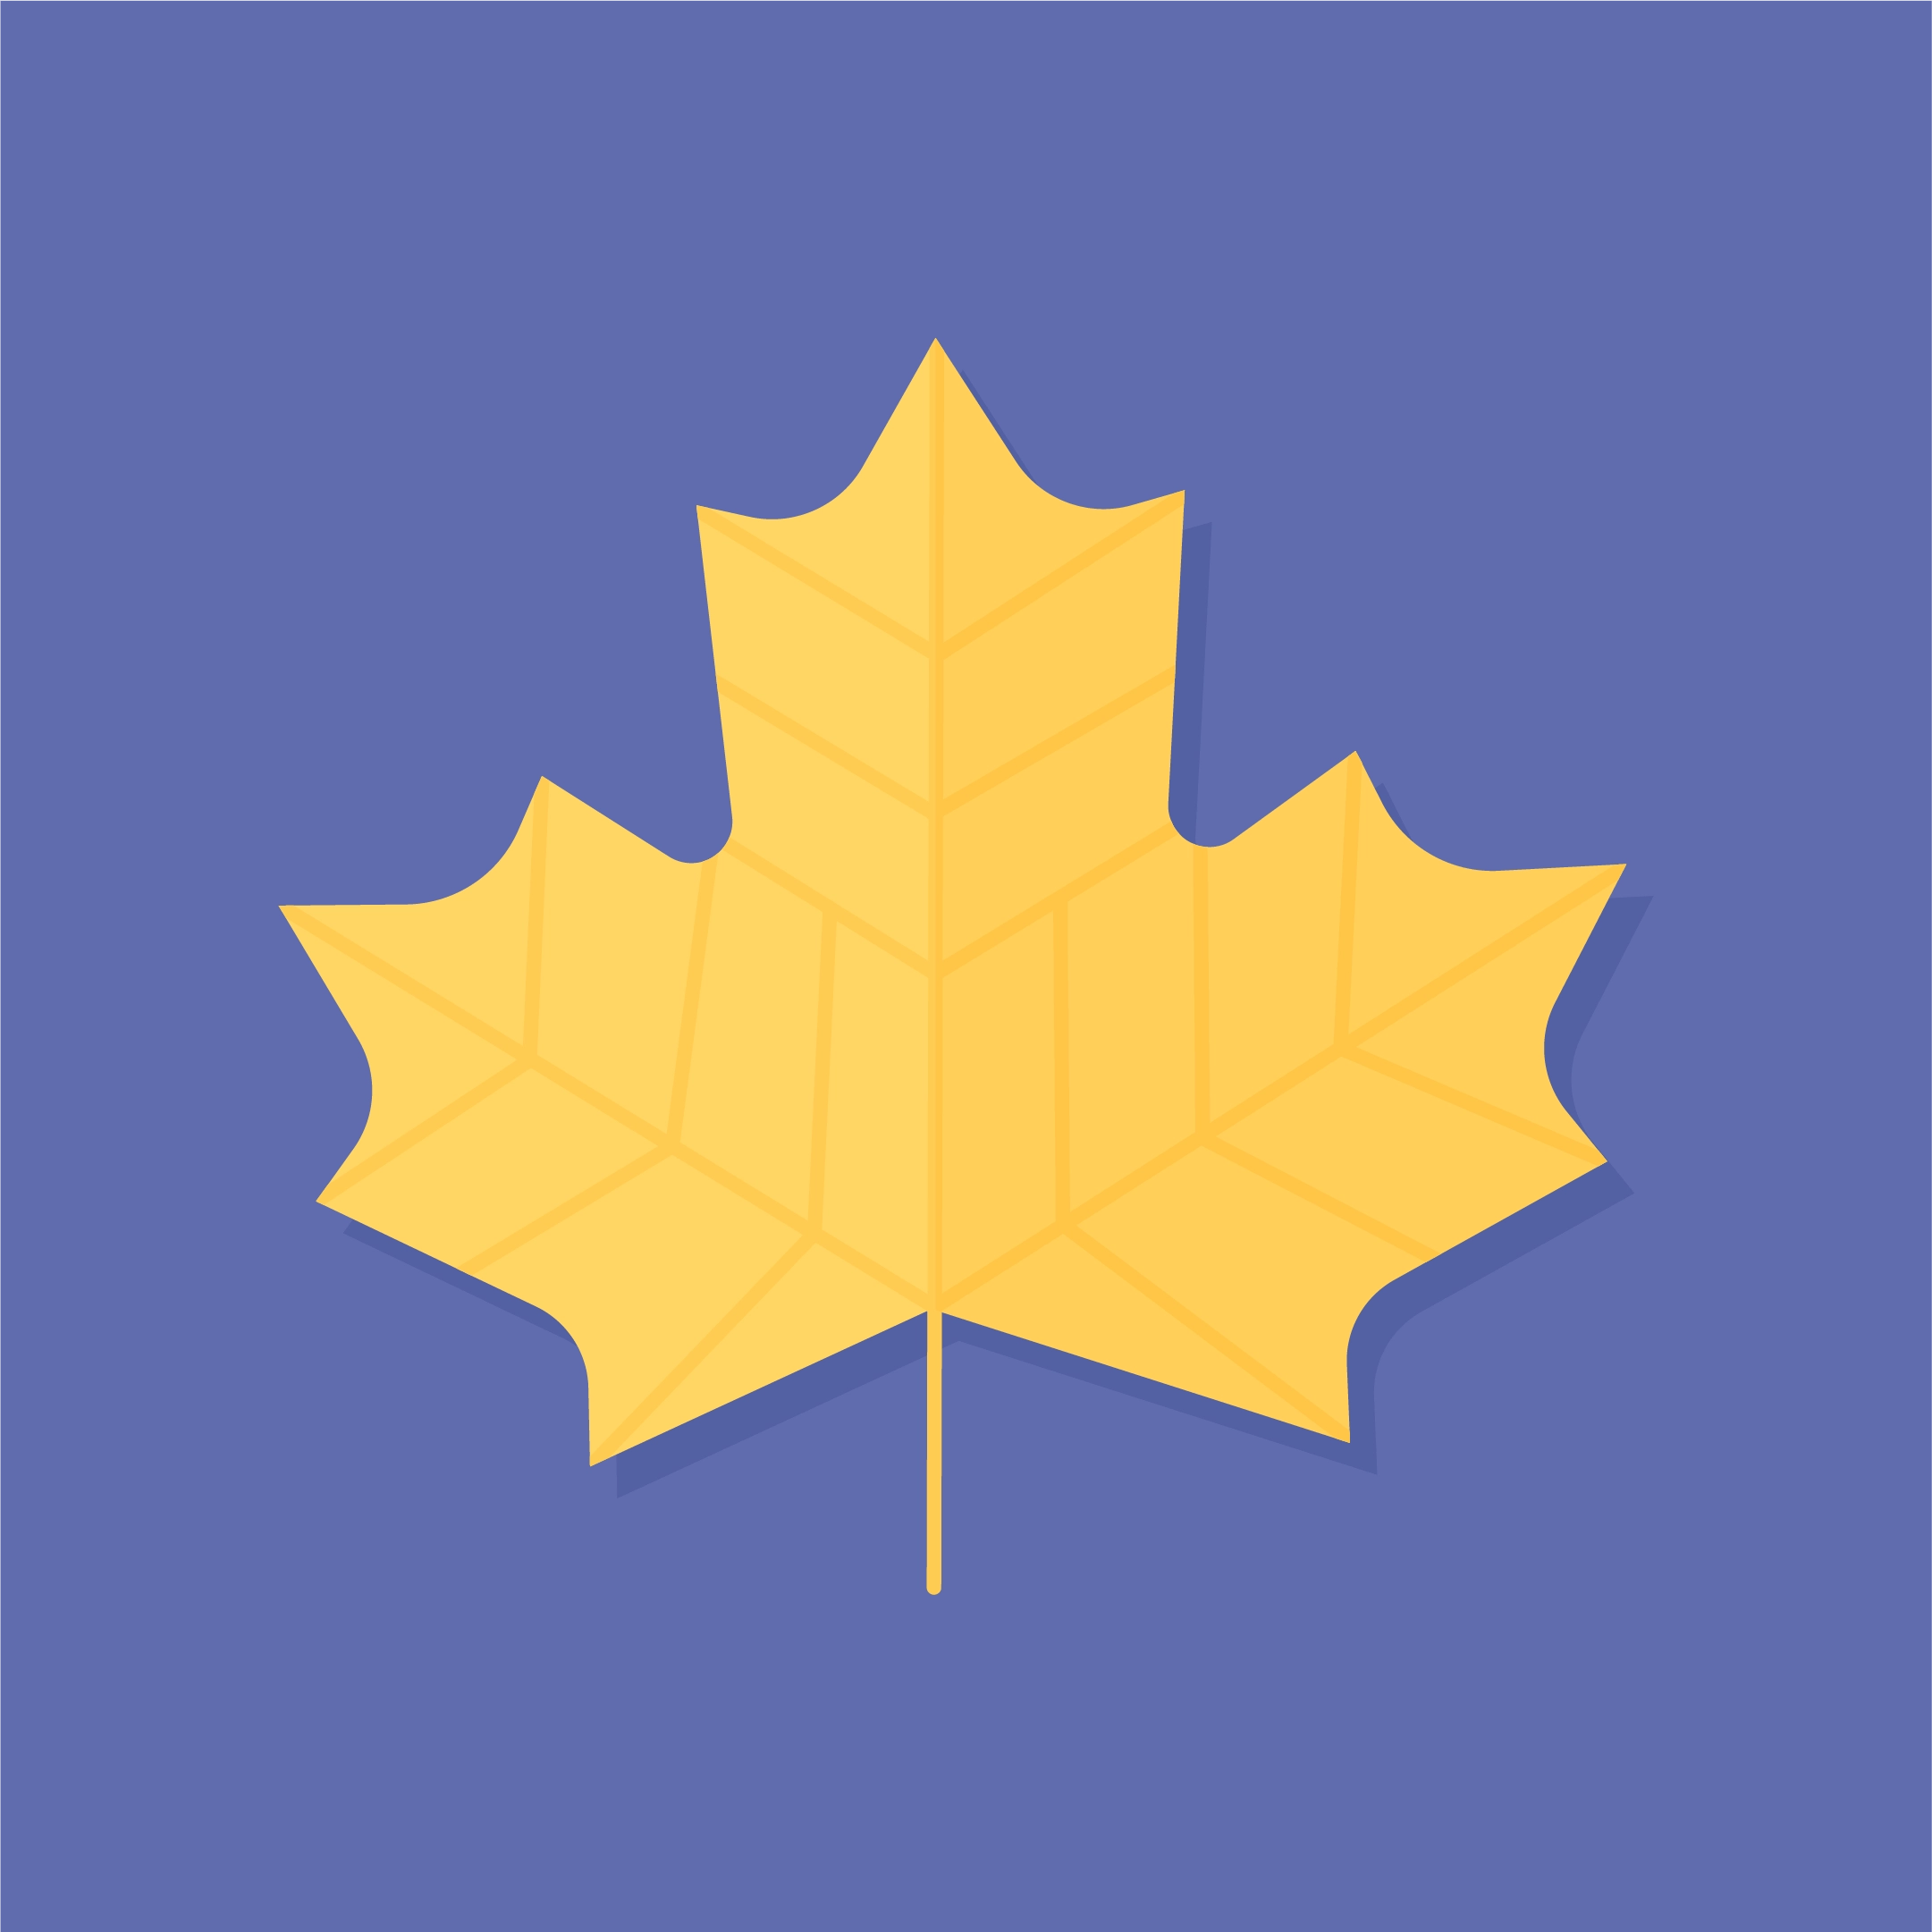 Vector illustration of a yellow Maple leaf in flat design style